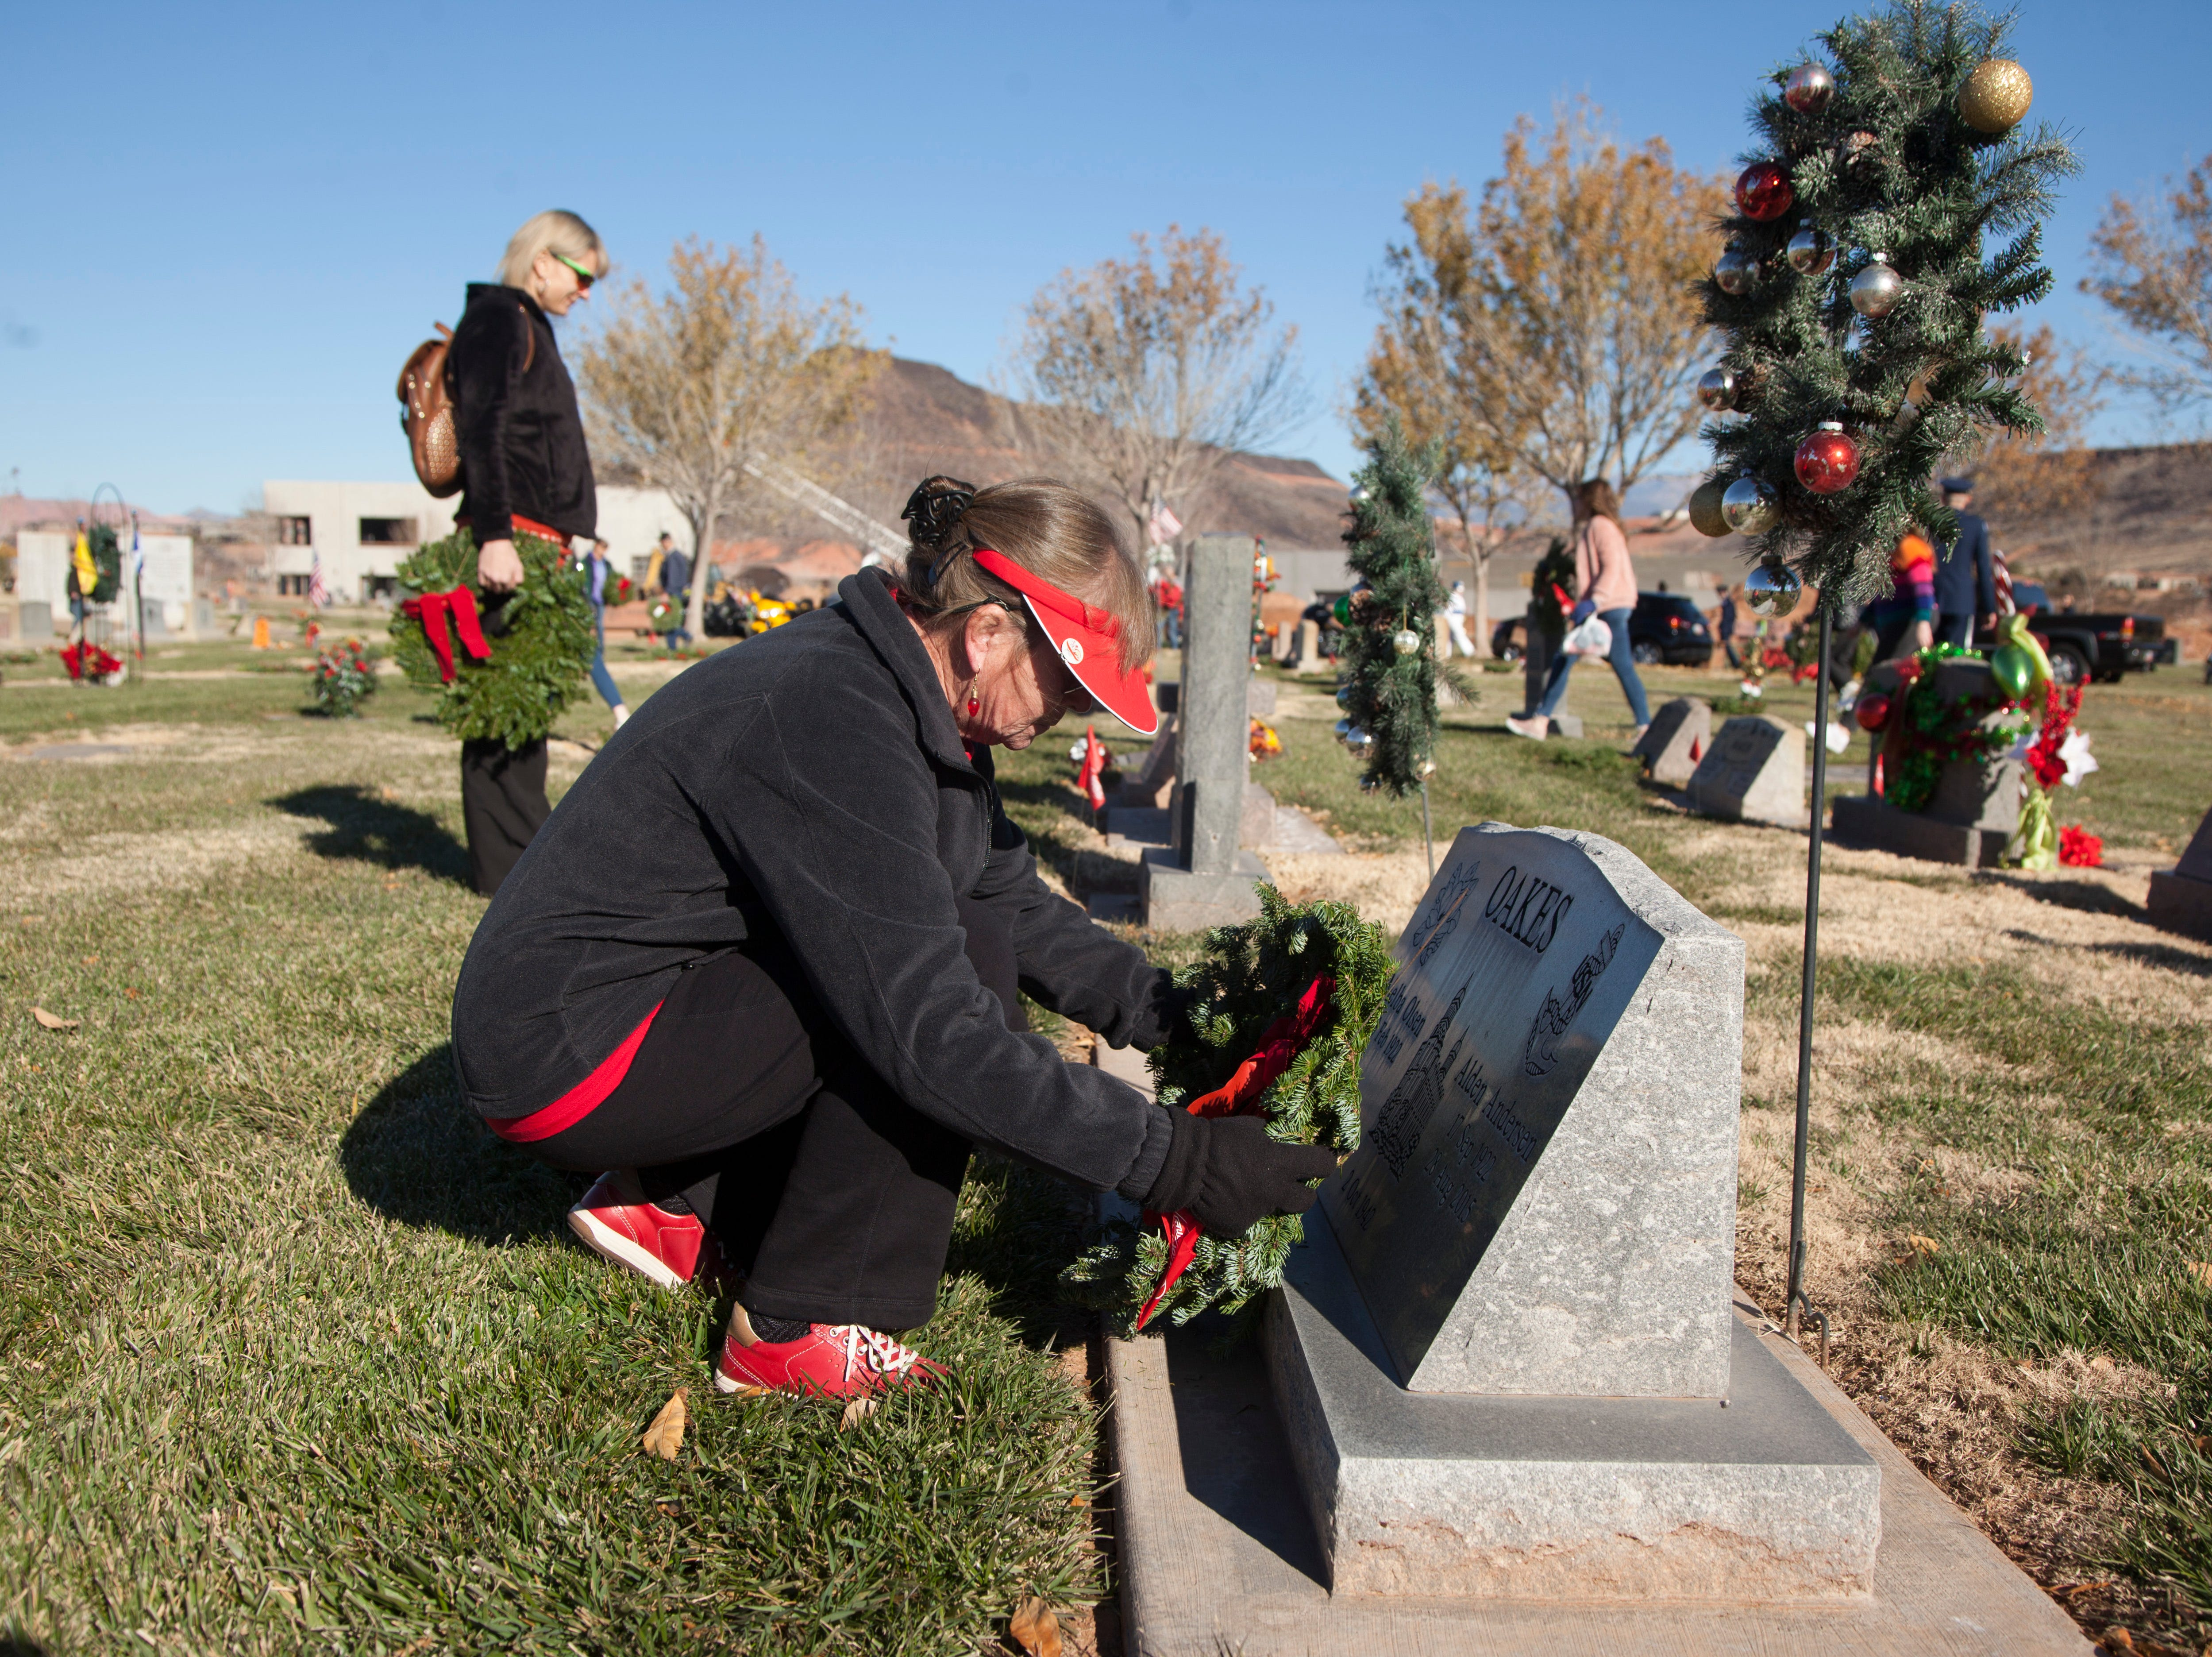 Community members place wreaths on the headstones of veterans at the Tonaquint Cemetery in St. George as part of the nationwide Wreaths Across America event on Dec. 15, 2018. The Color Country Chapter of the Daughters of the American Revolution organized this year's effort to place more than 1,800 wreaths at three Southern Utah cemeteries.